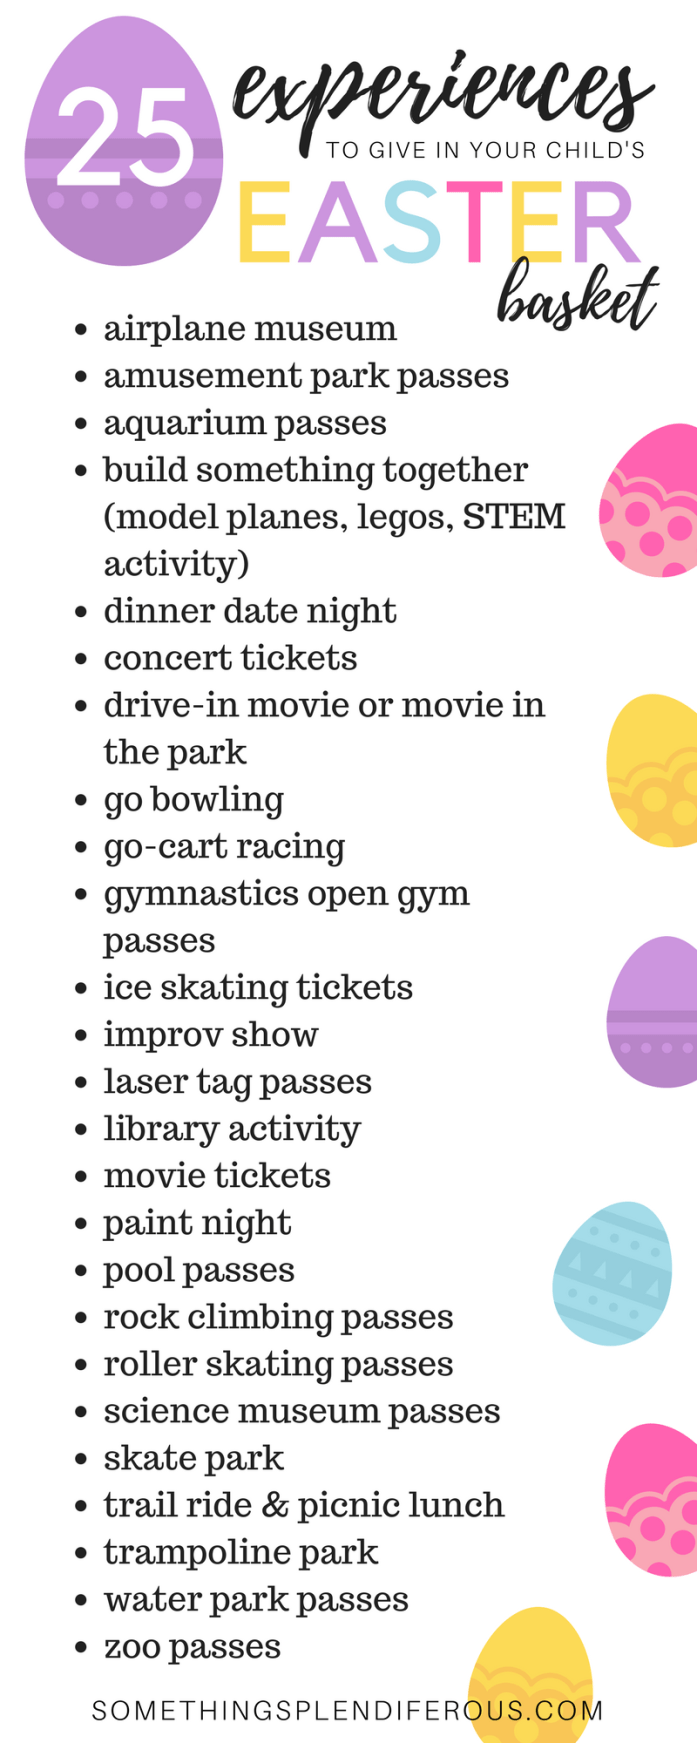 25 Experience to Give in Your Child's Easter Basket this year #easter #notcandy #nottoys